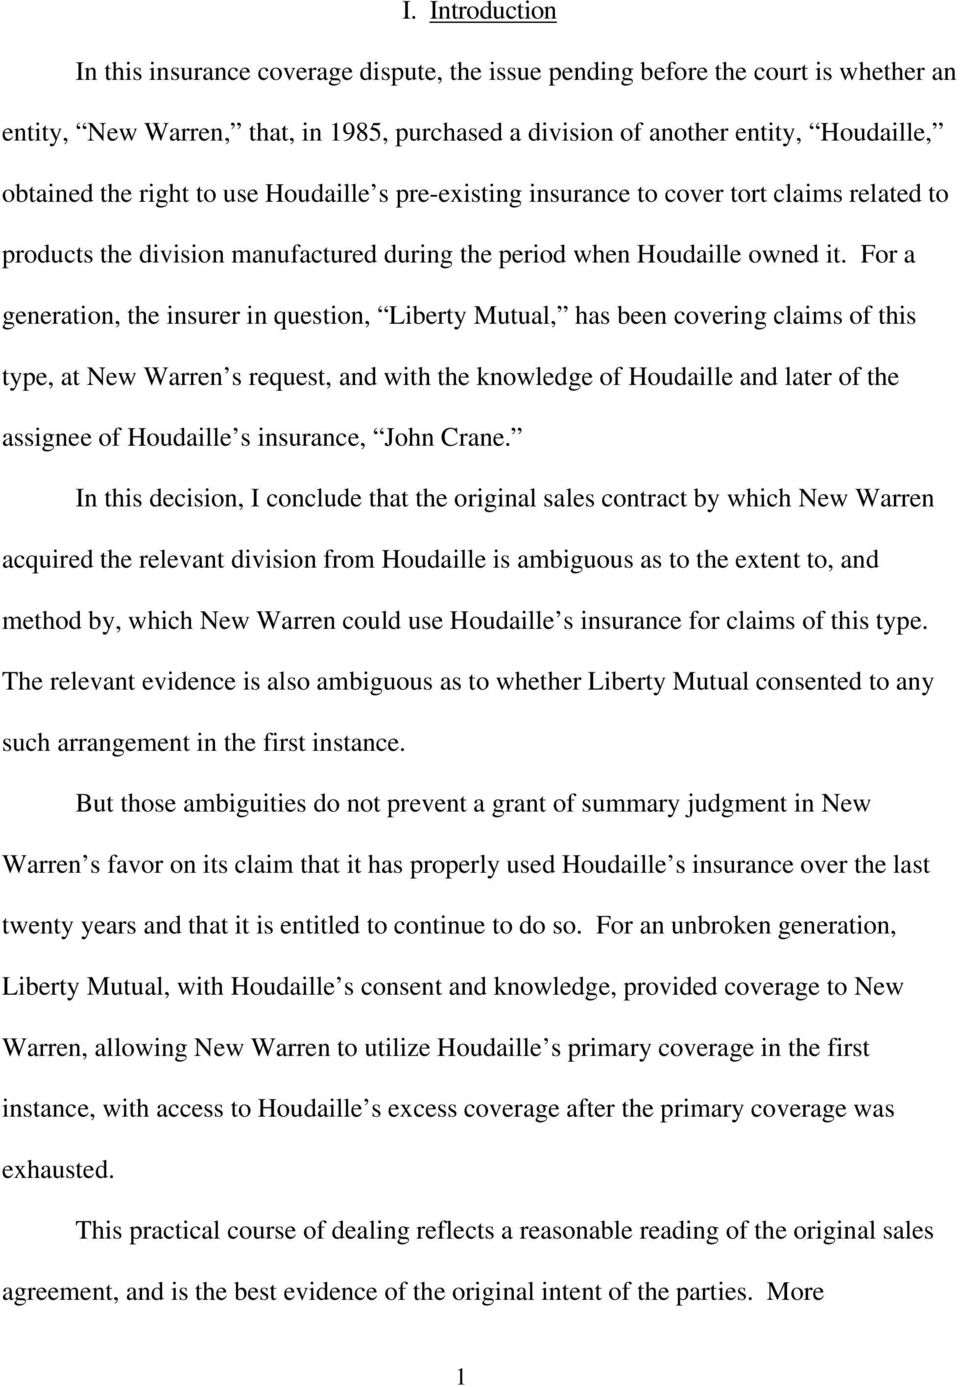 For a generation, the insurer in question, Liberty Mutual, has been covering claims of this type, at New Warren s request, and with the knowledge of Houdaille and later of the assignee of Houdaille s